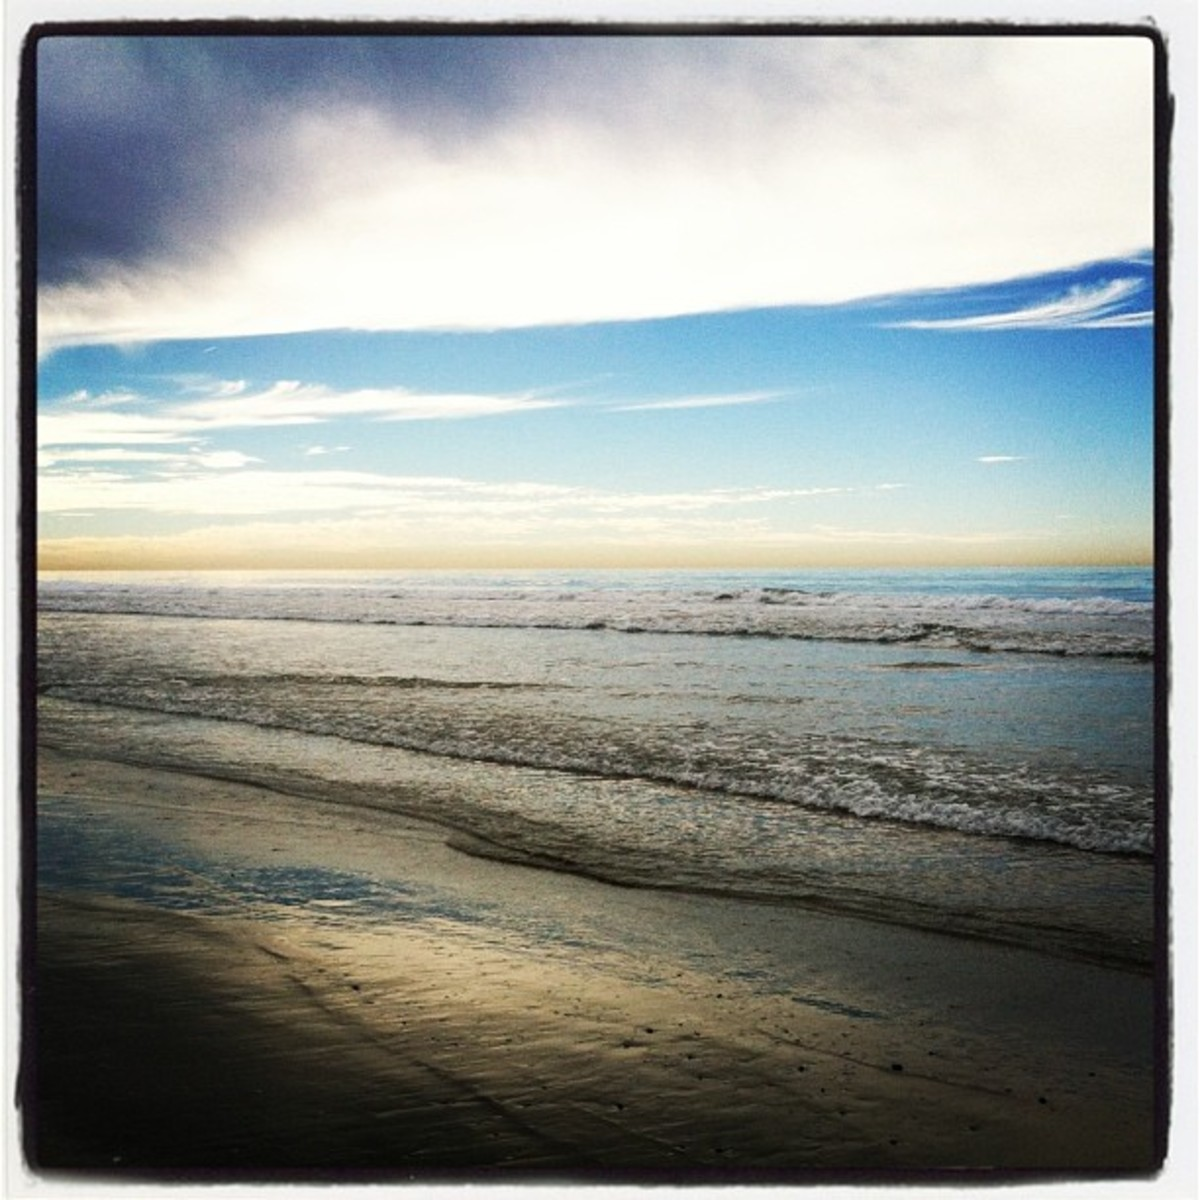 photo I took with Instagram at the beach in 2013